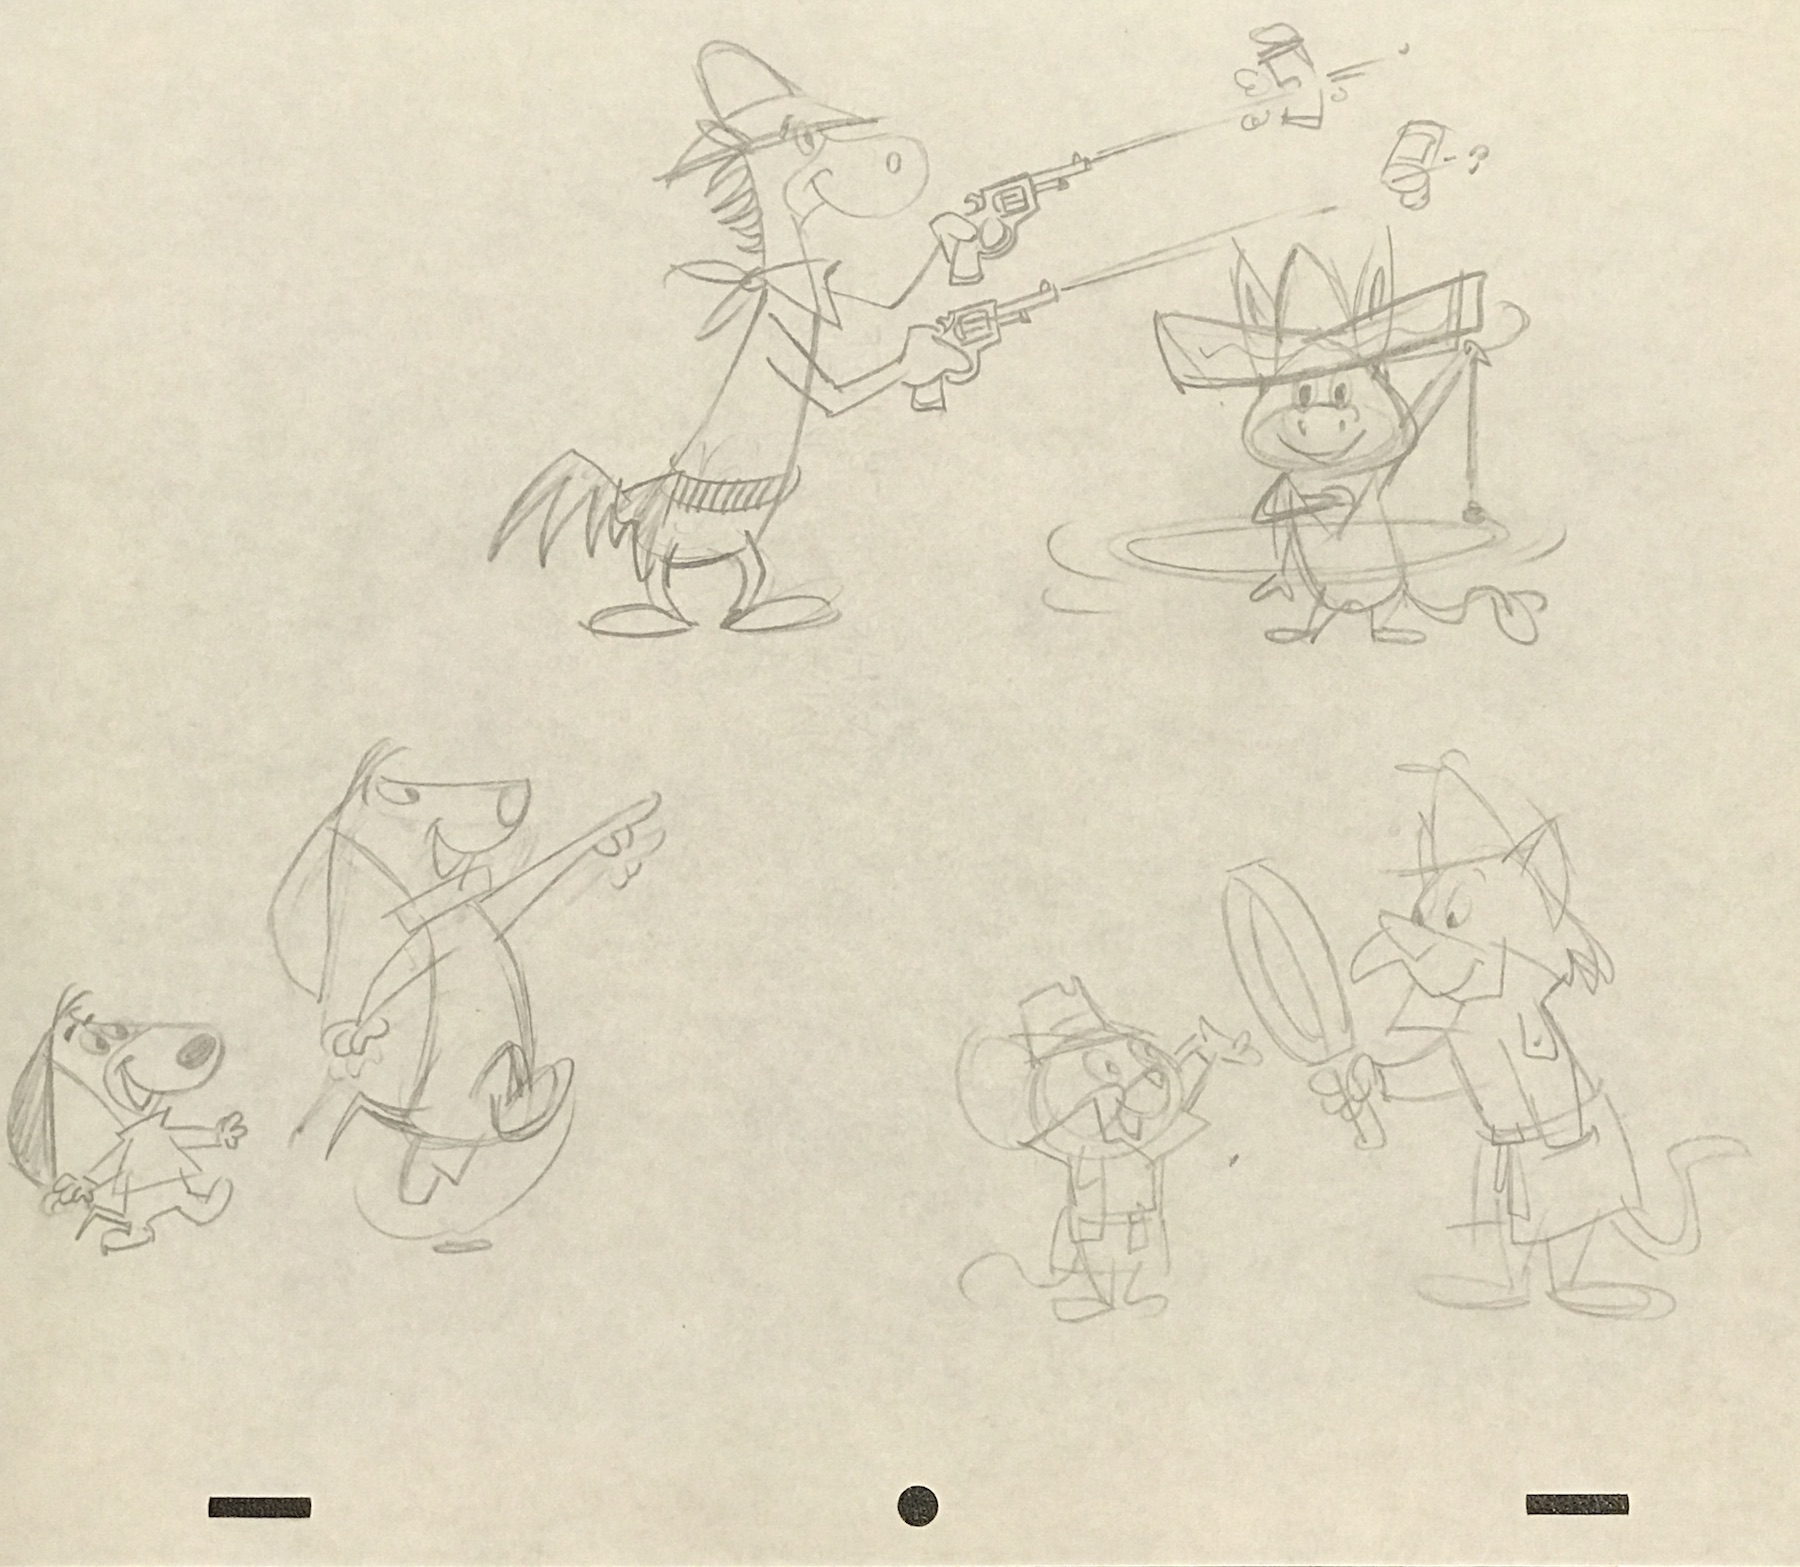 A layout/model drawing of Hanna Barbera characters from 1959 available at ArtInsights